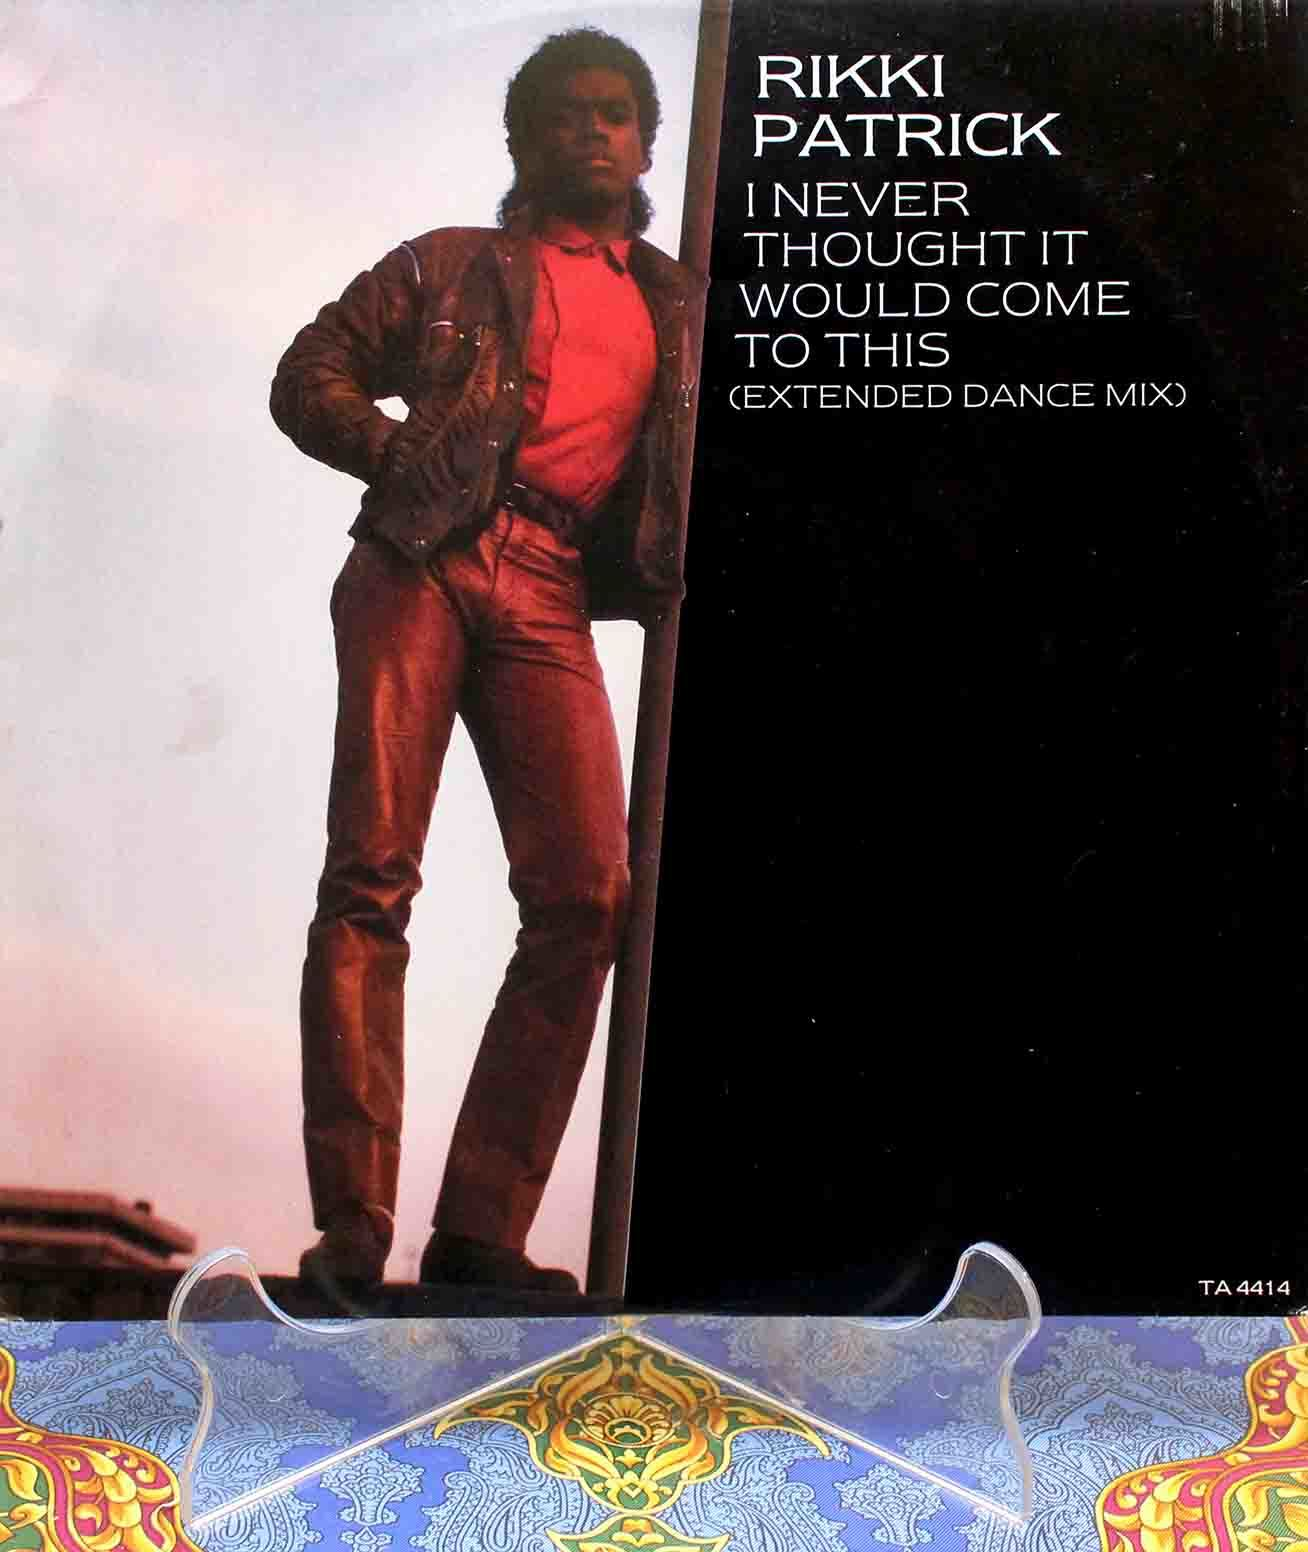 Rikki Patrick – I Never Thought It Would Come To This 01